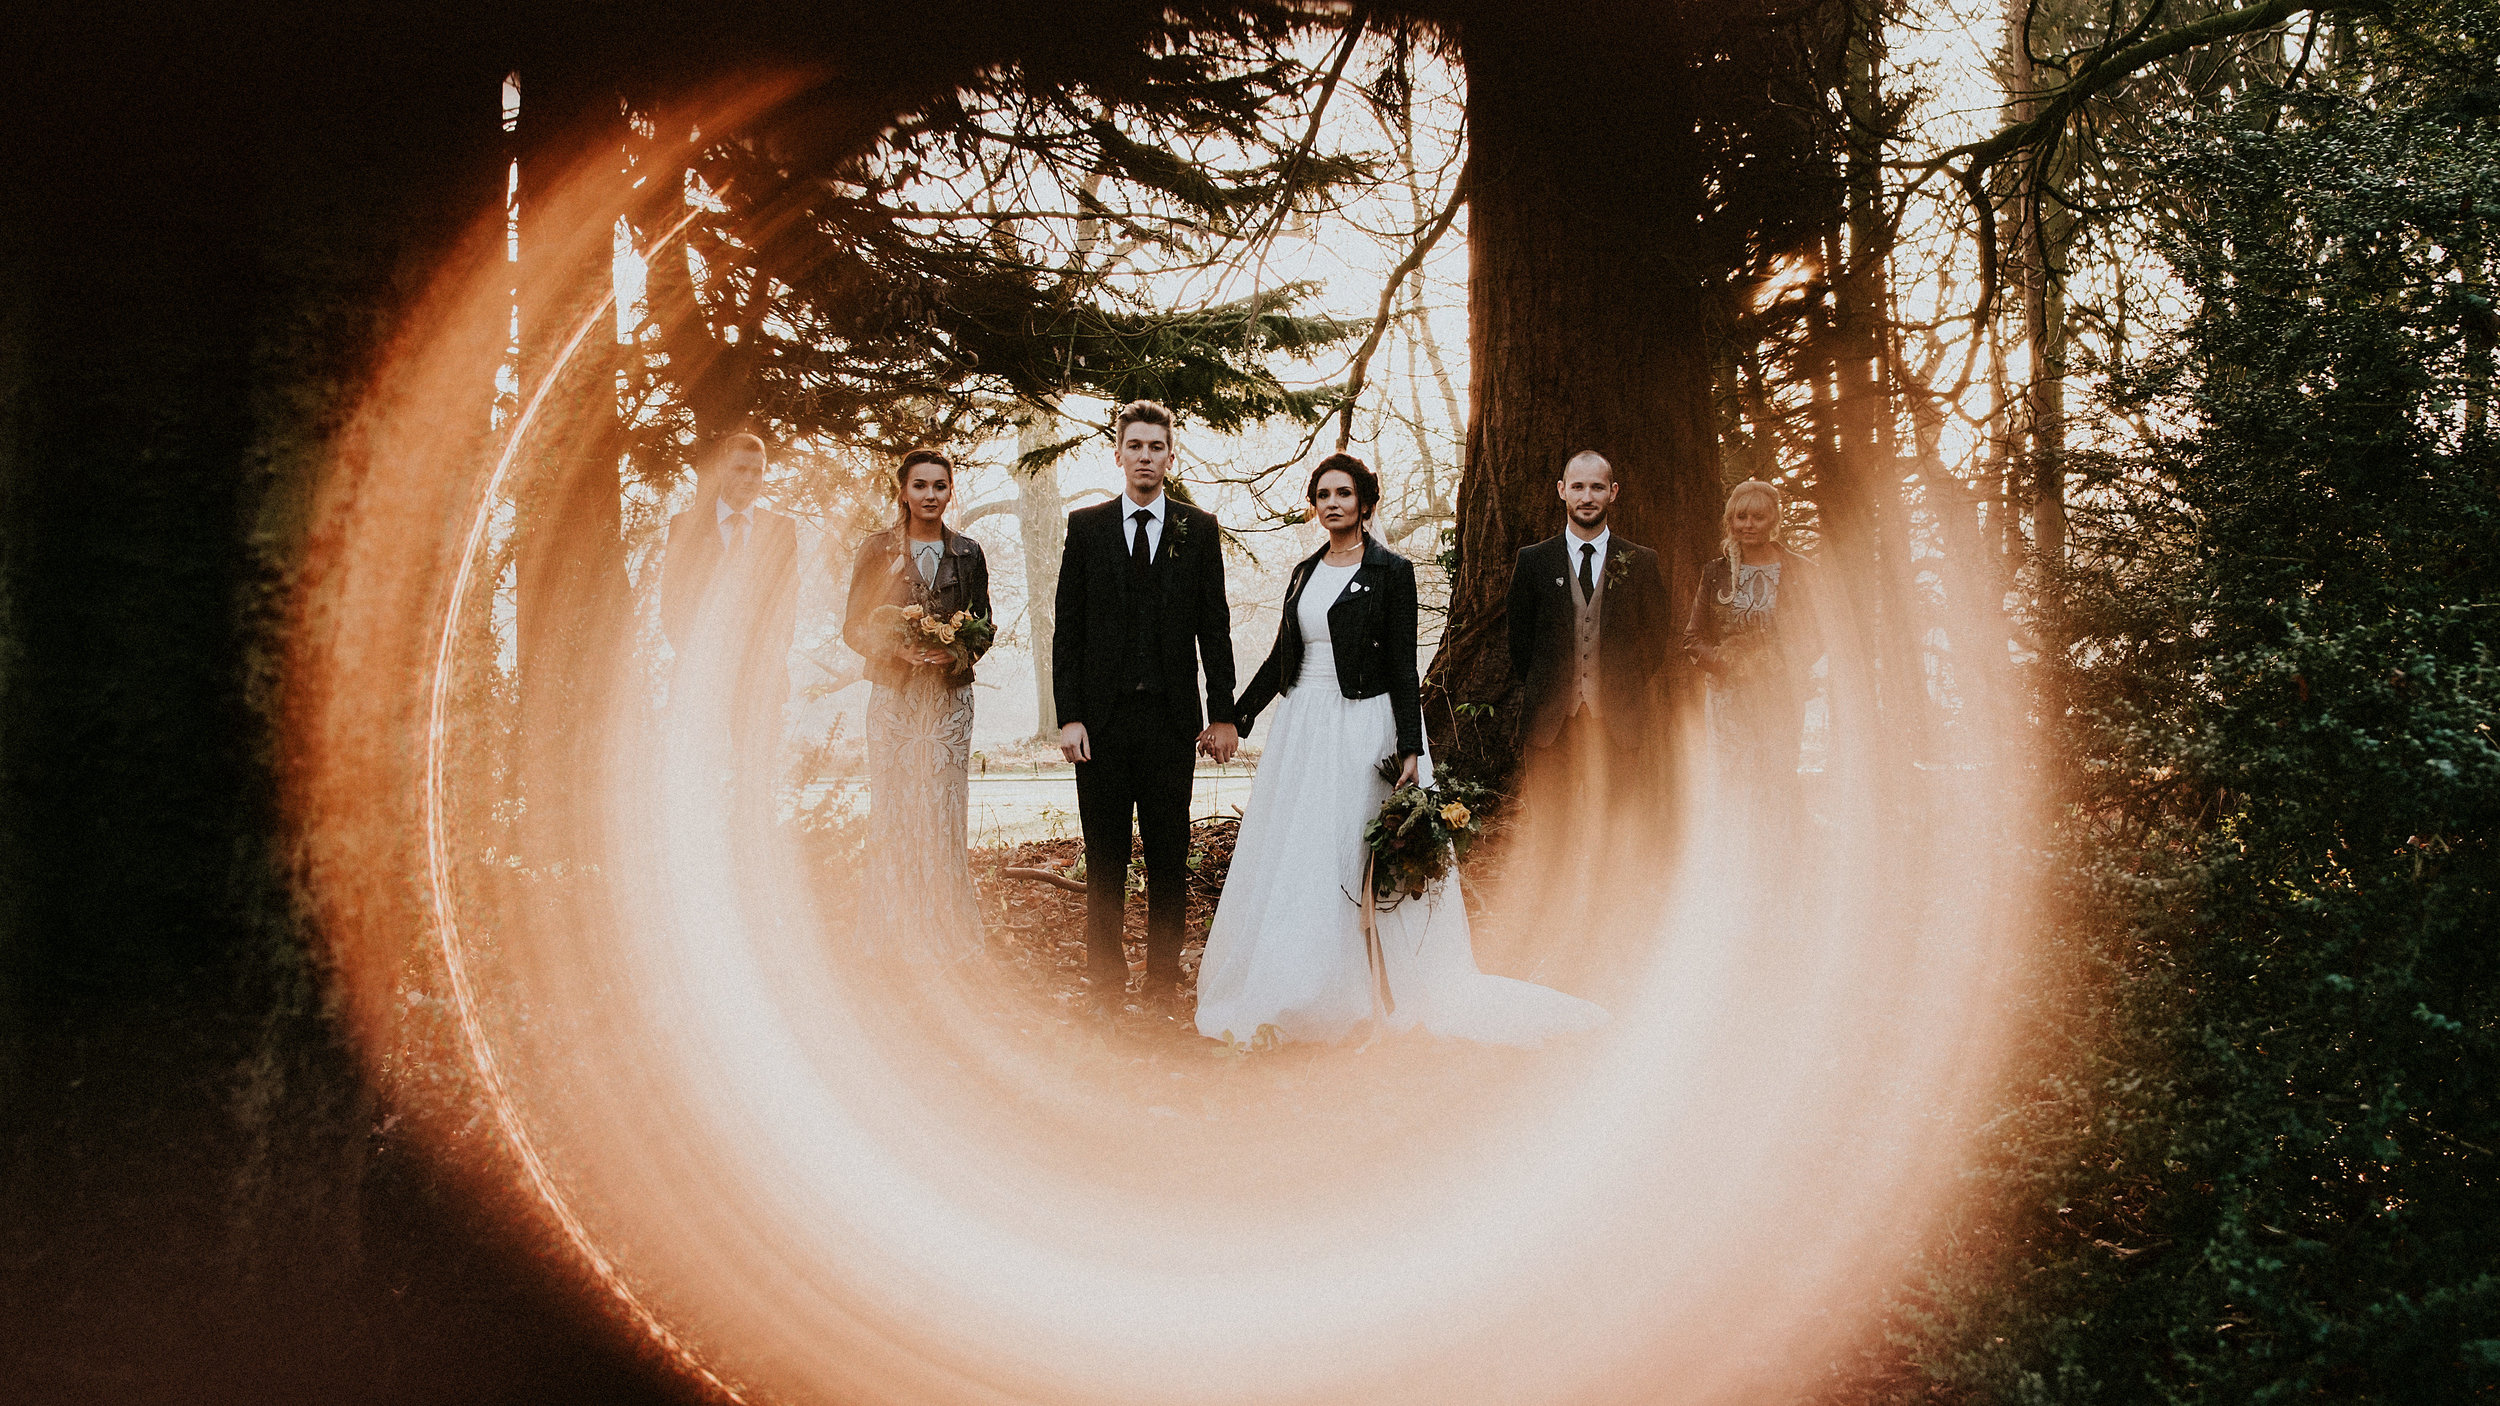 Beautiful floral design from Firenza Flowers, Leather Jackets & Low Winter Sun in this spell bound Winter Wedding at Hazlewood Castle.